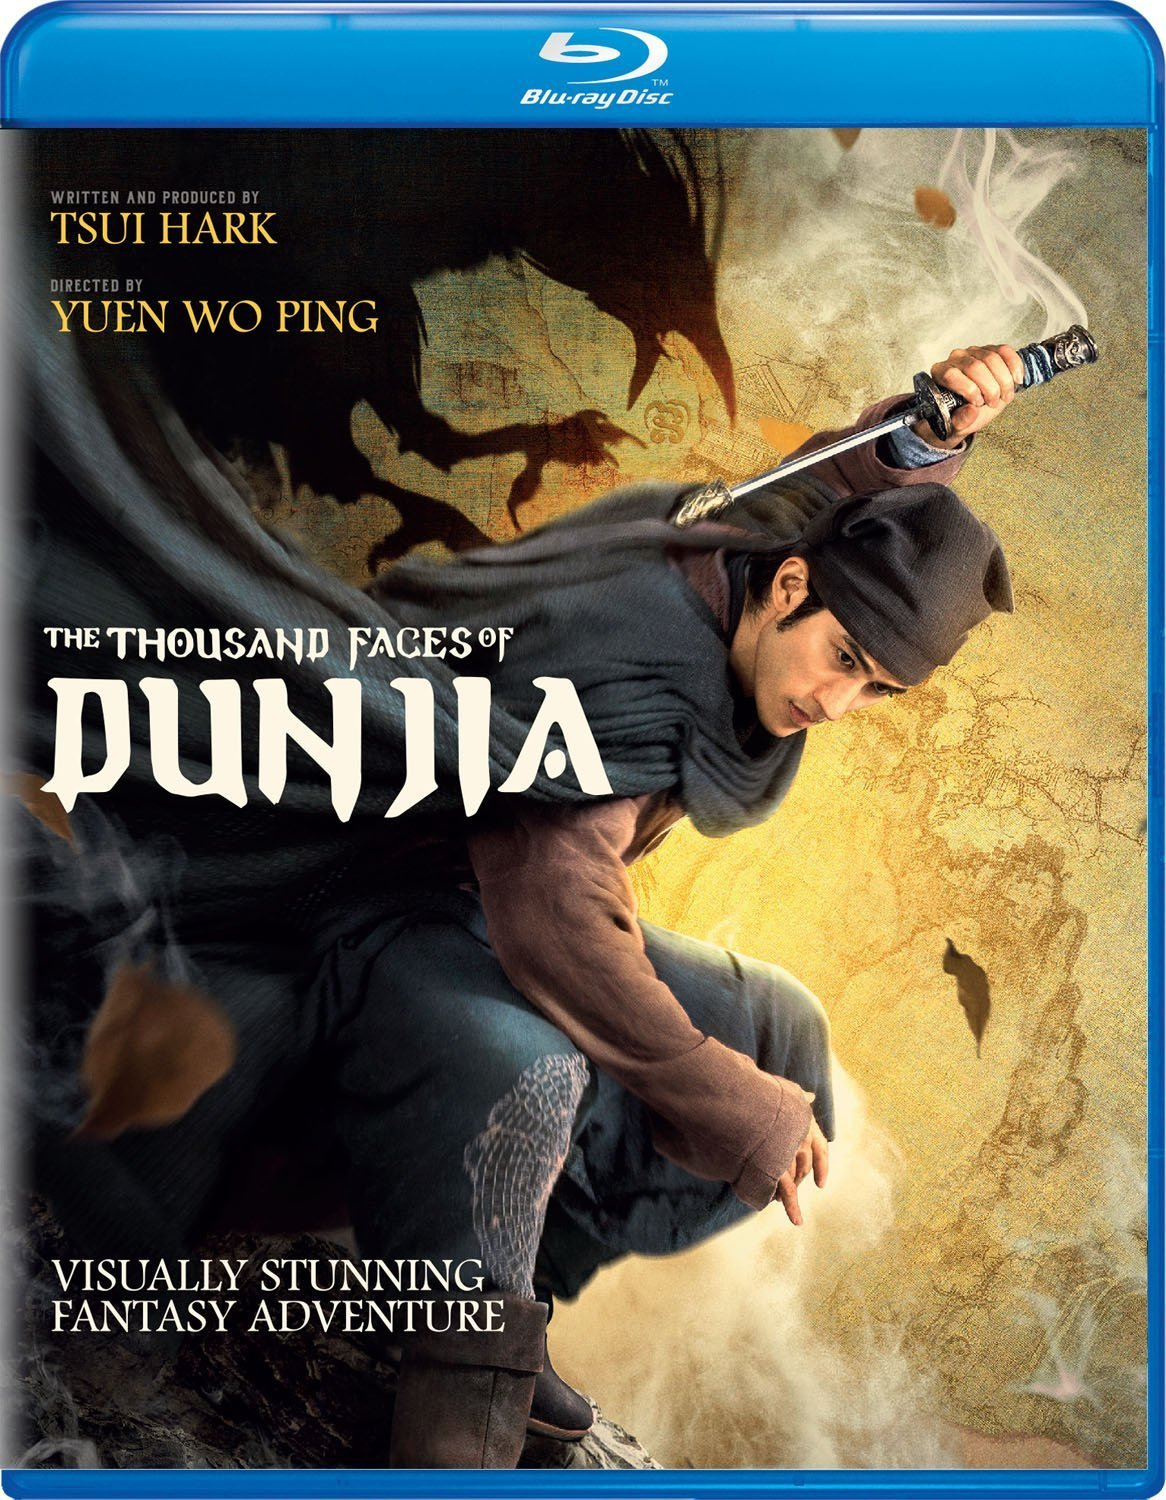 The Thousand Faces of Dunjia (2017) Blu-ray